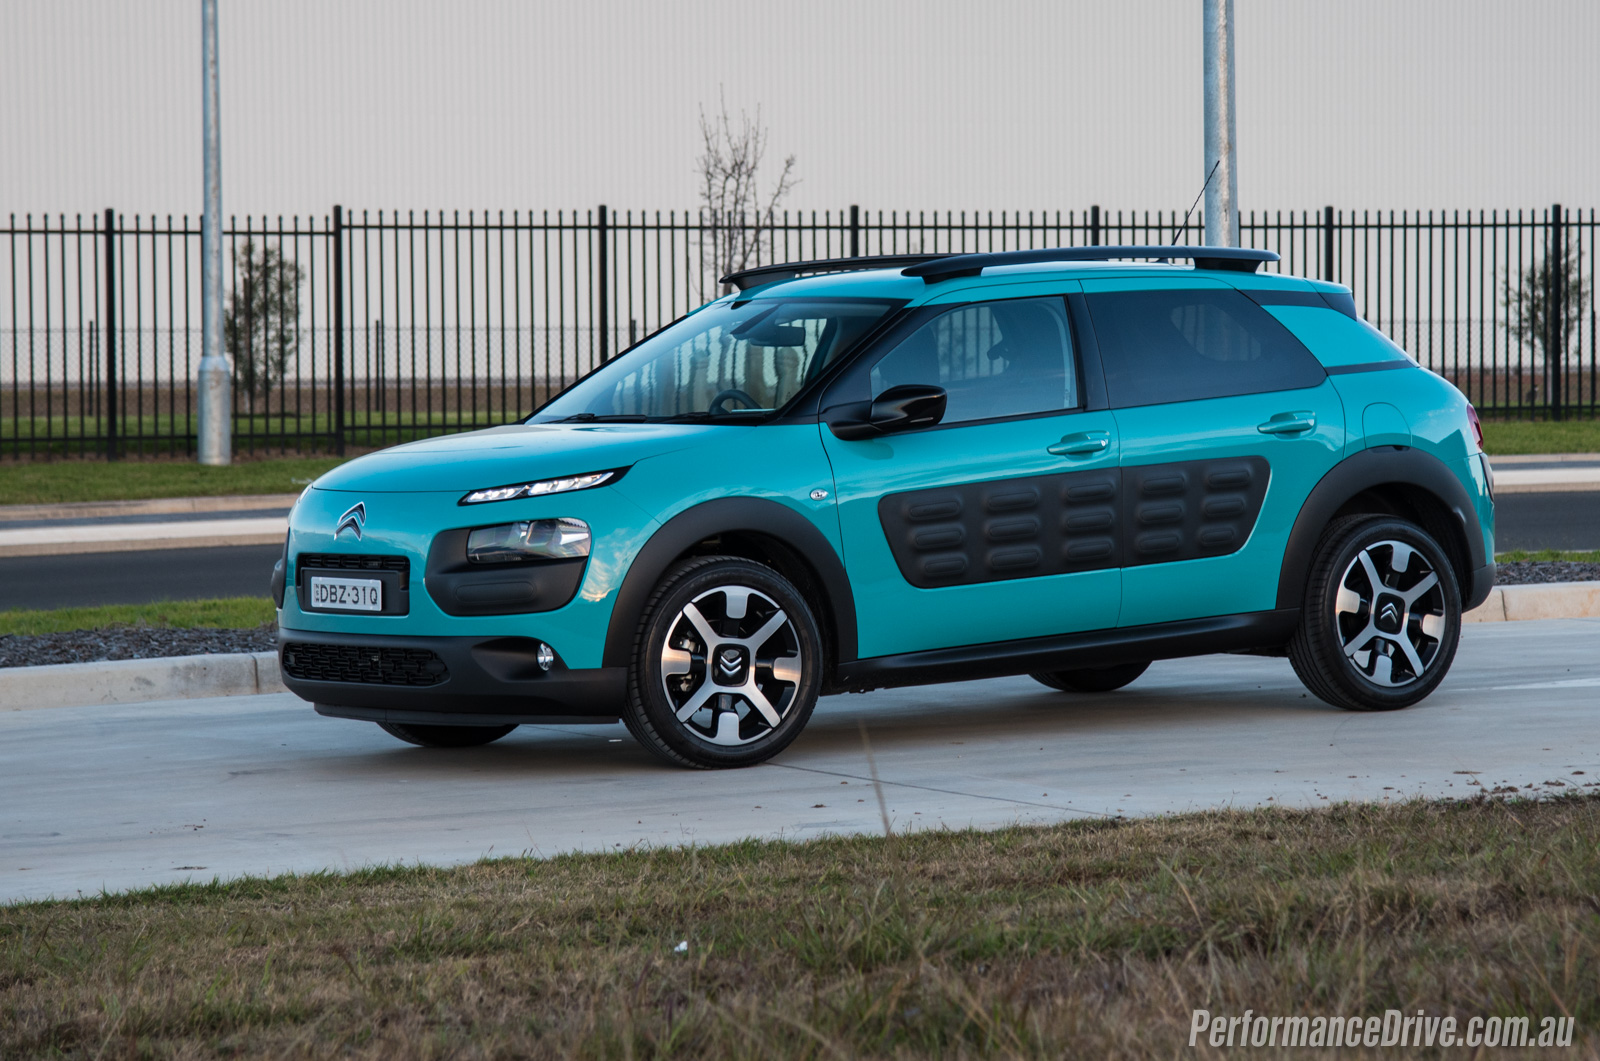 2016 citroen c4 cactus 1 2 petrol review video performancedrive. Black Bedroom Furniture Sets. Home Design Ideas